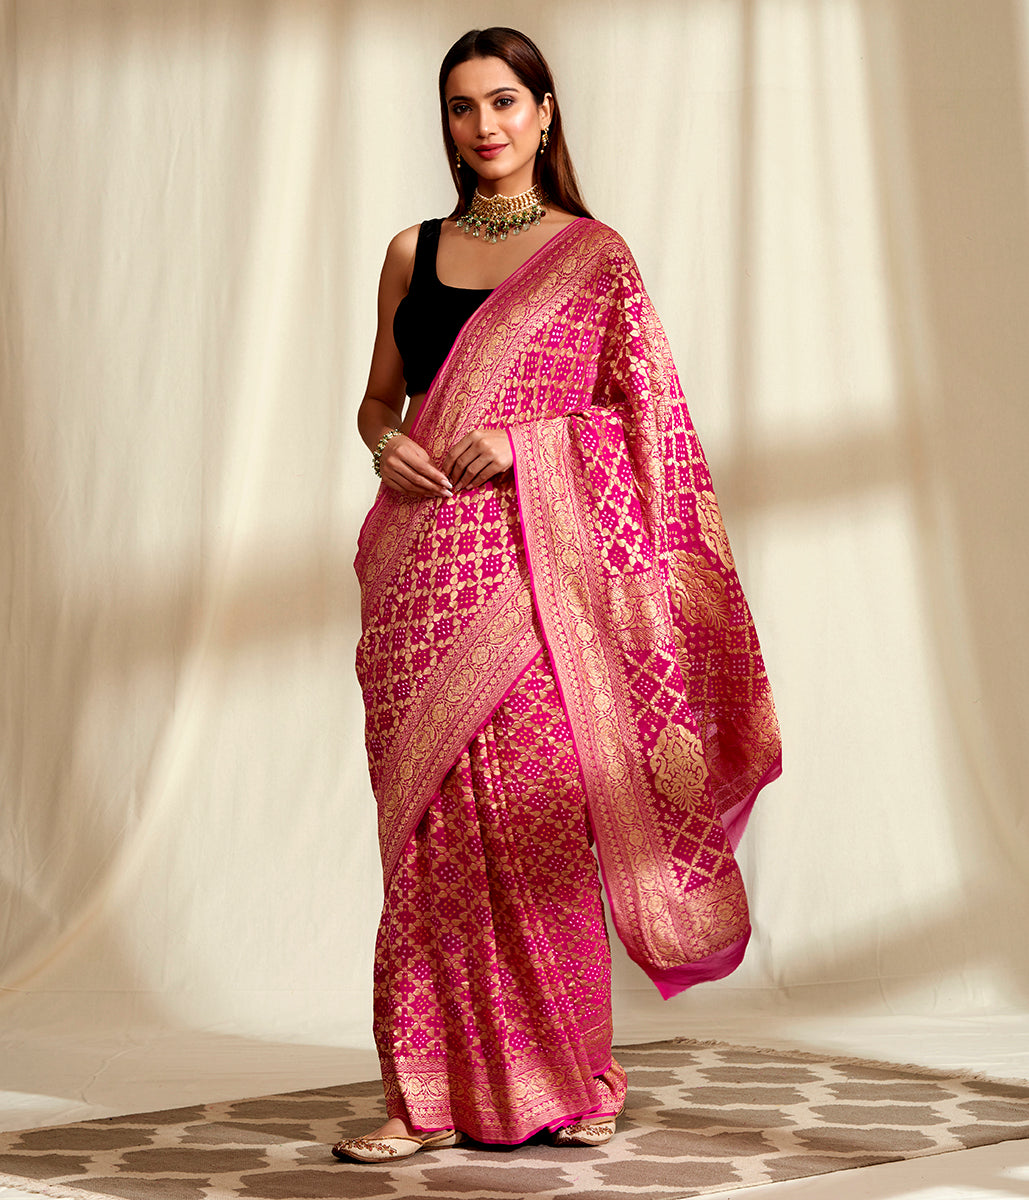 Handwoven Banarasi Bandhej Saree in Pink with Gold Zari Weave